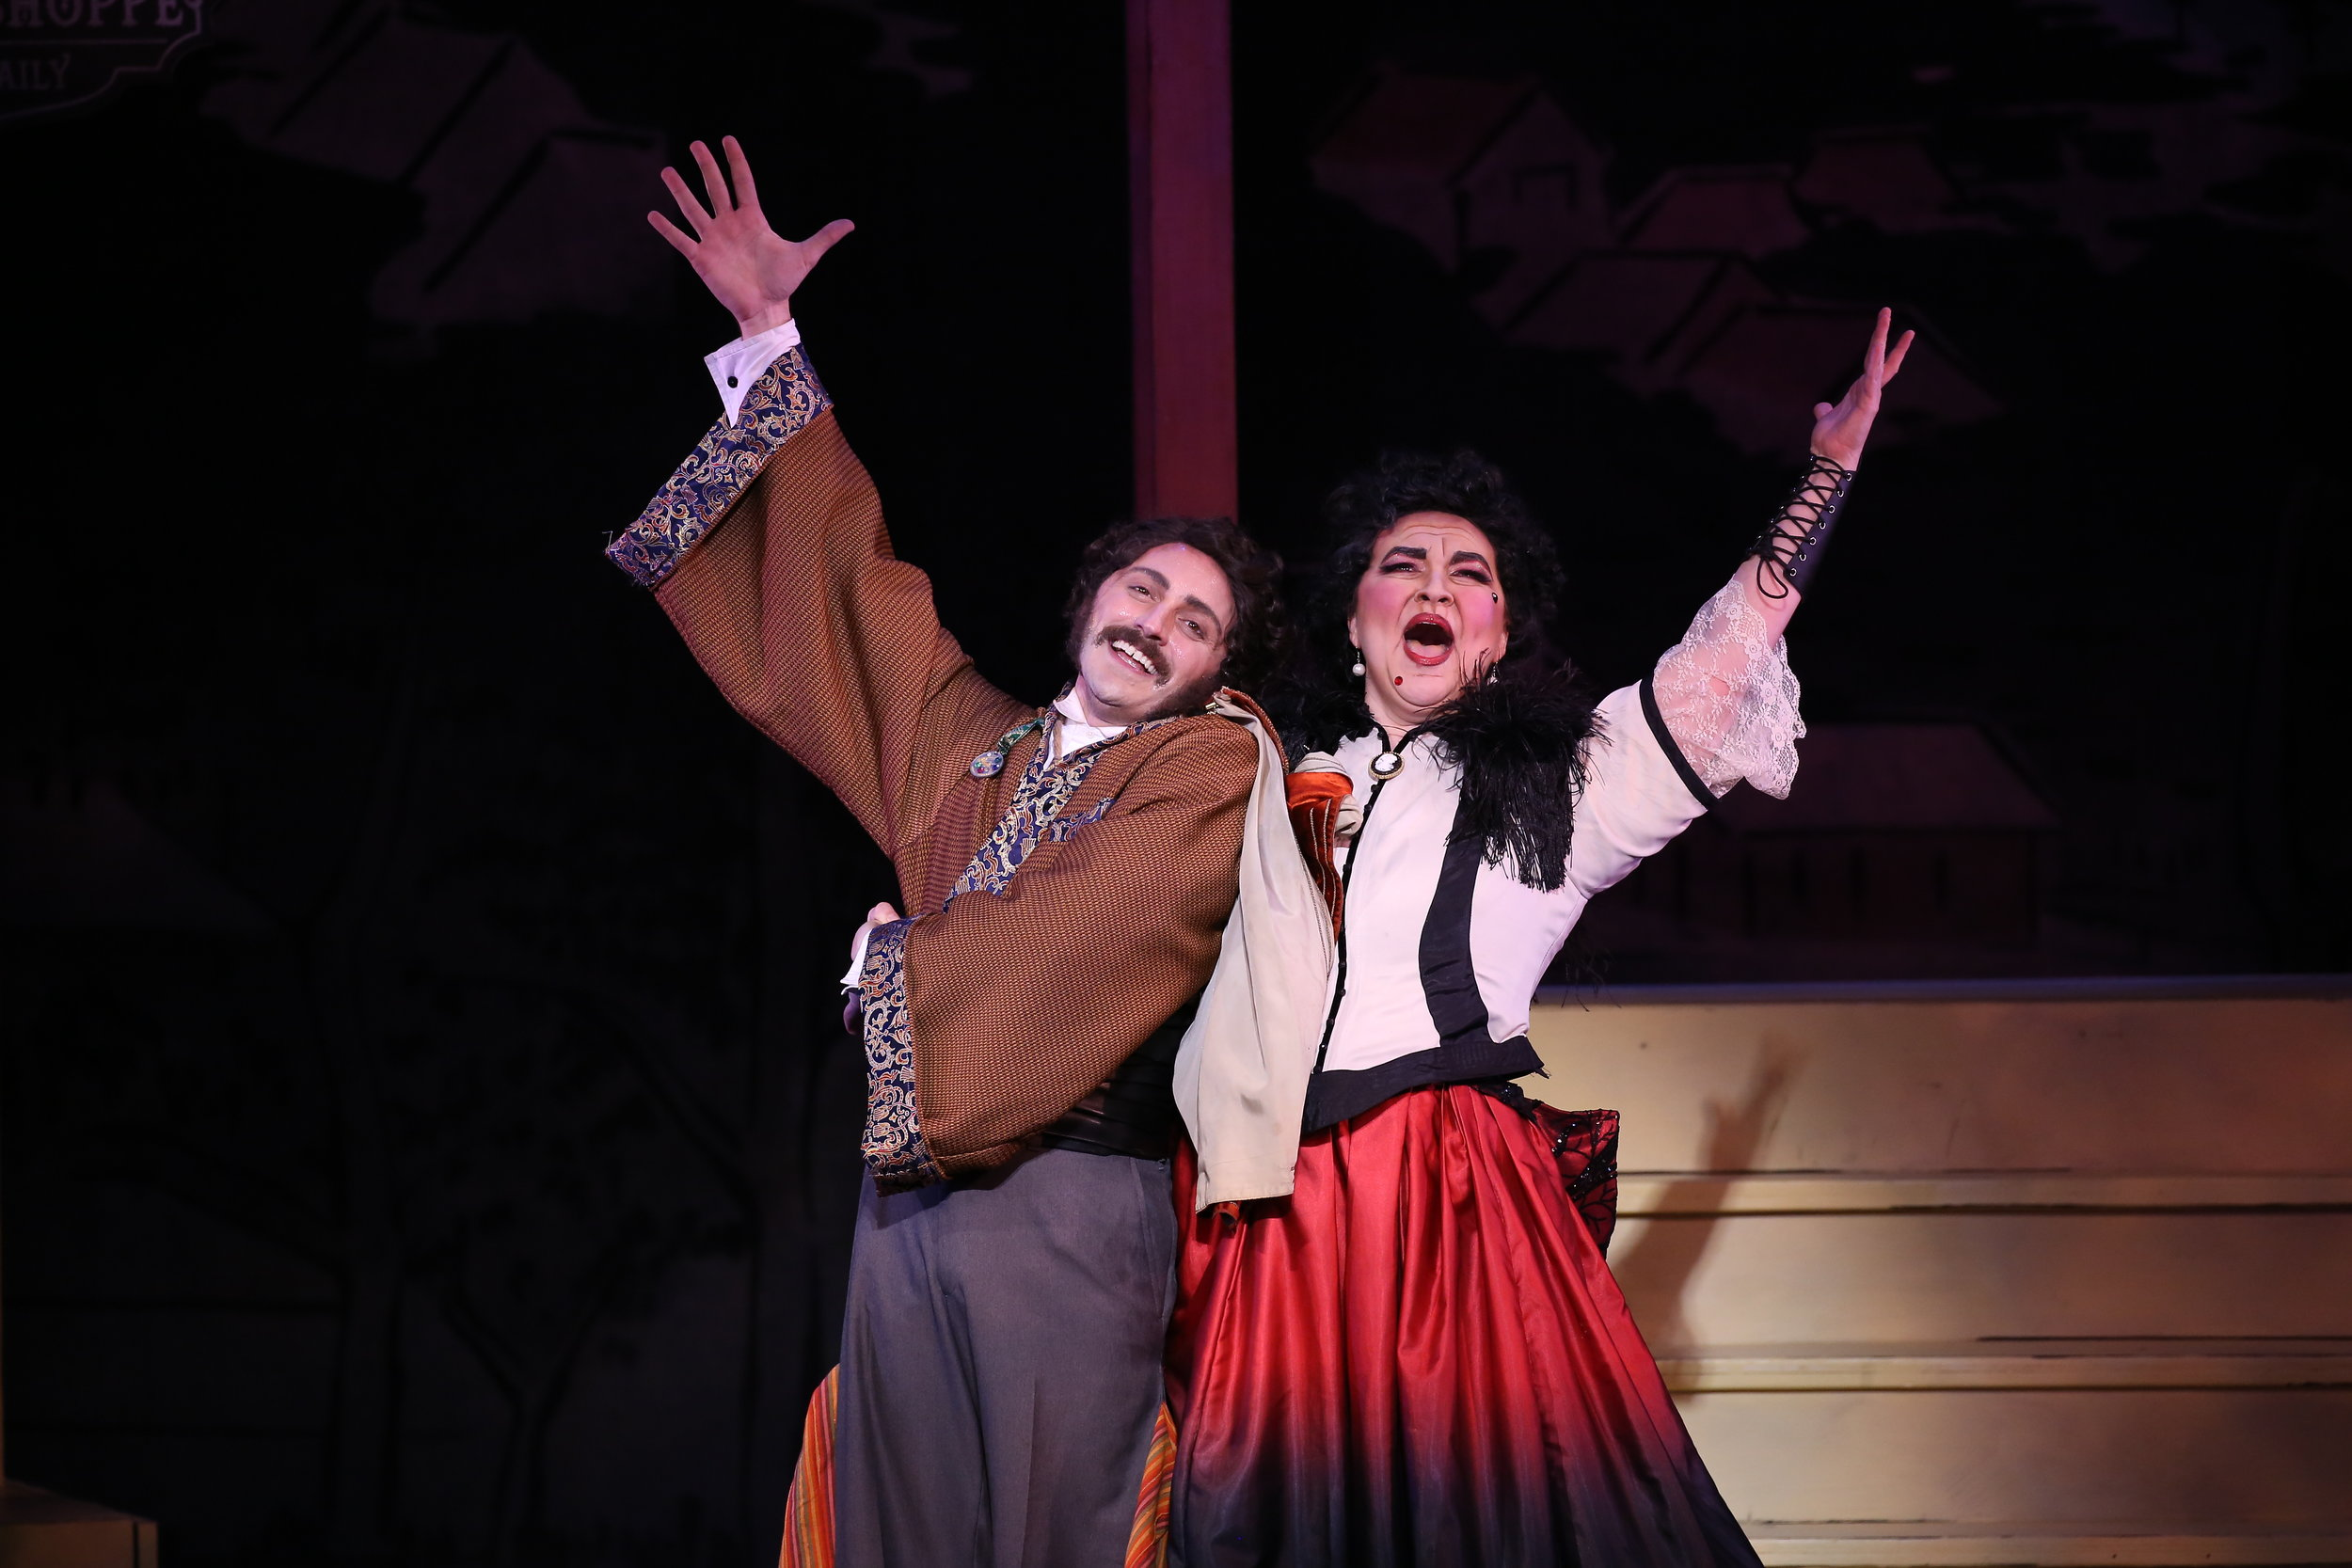 'Til day is done  - David Macaluso and Caitlin Burke